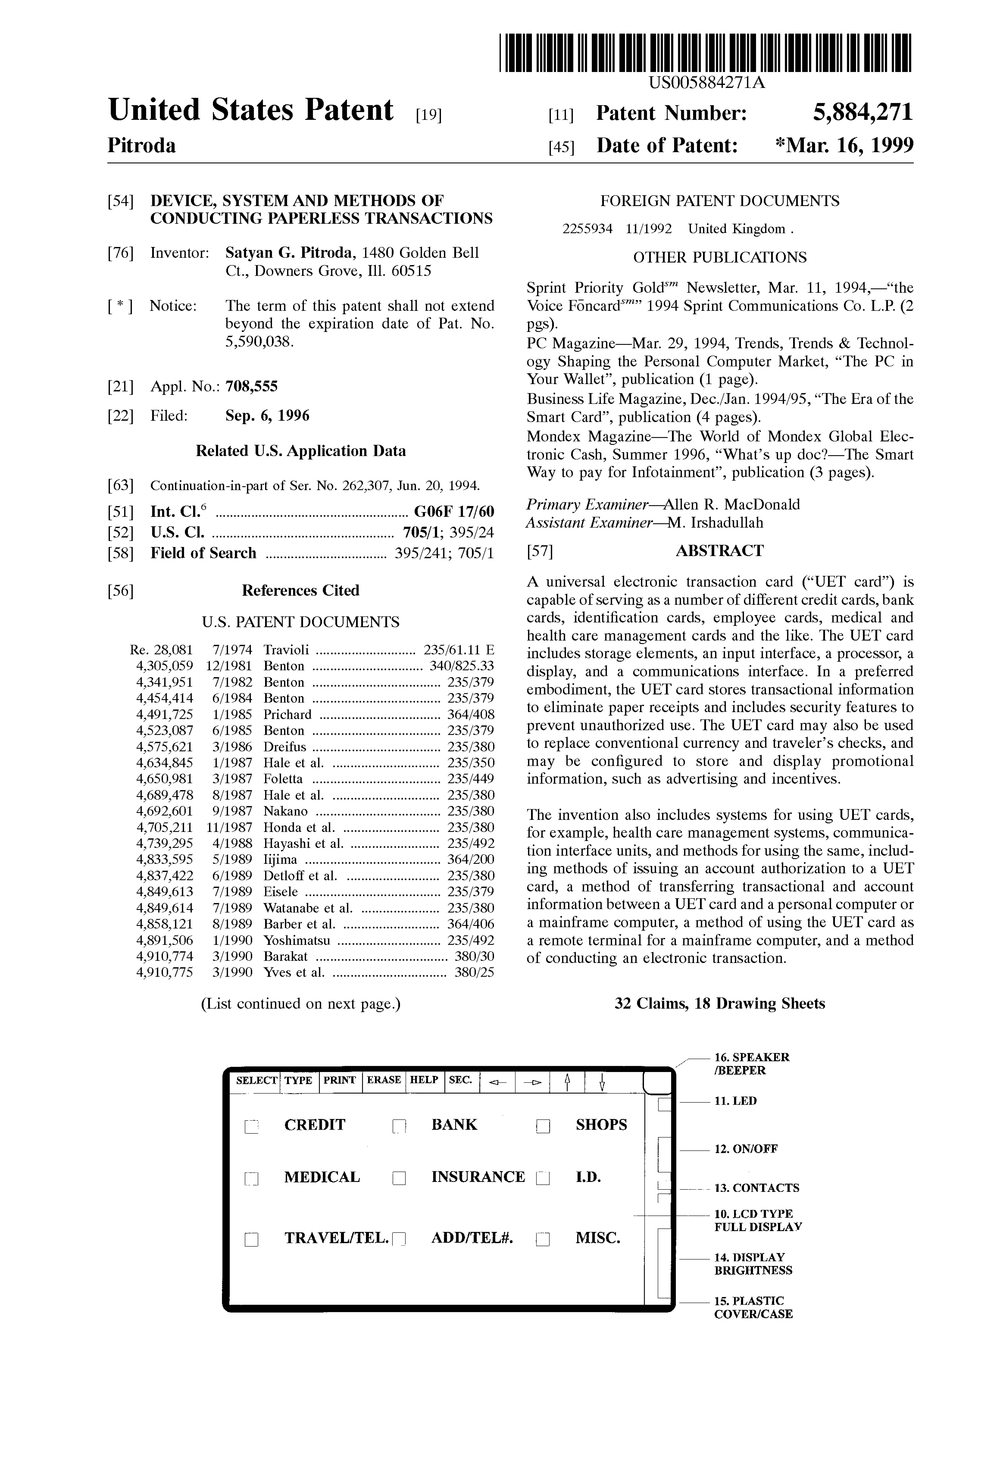 US5884271 Device, system and methods of conducting paperless transactions.jpg